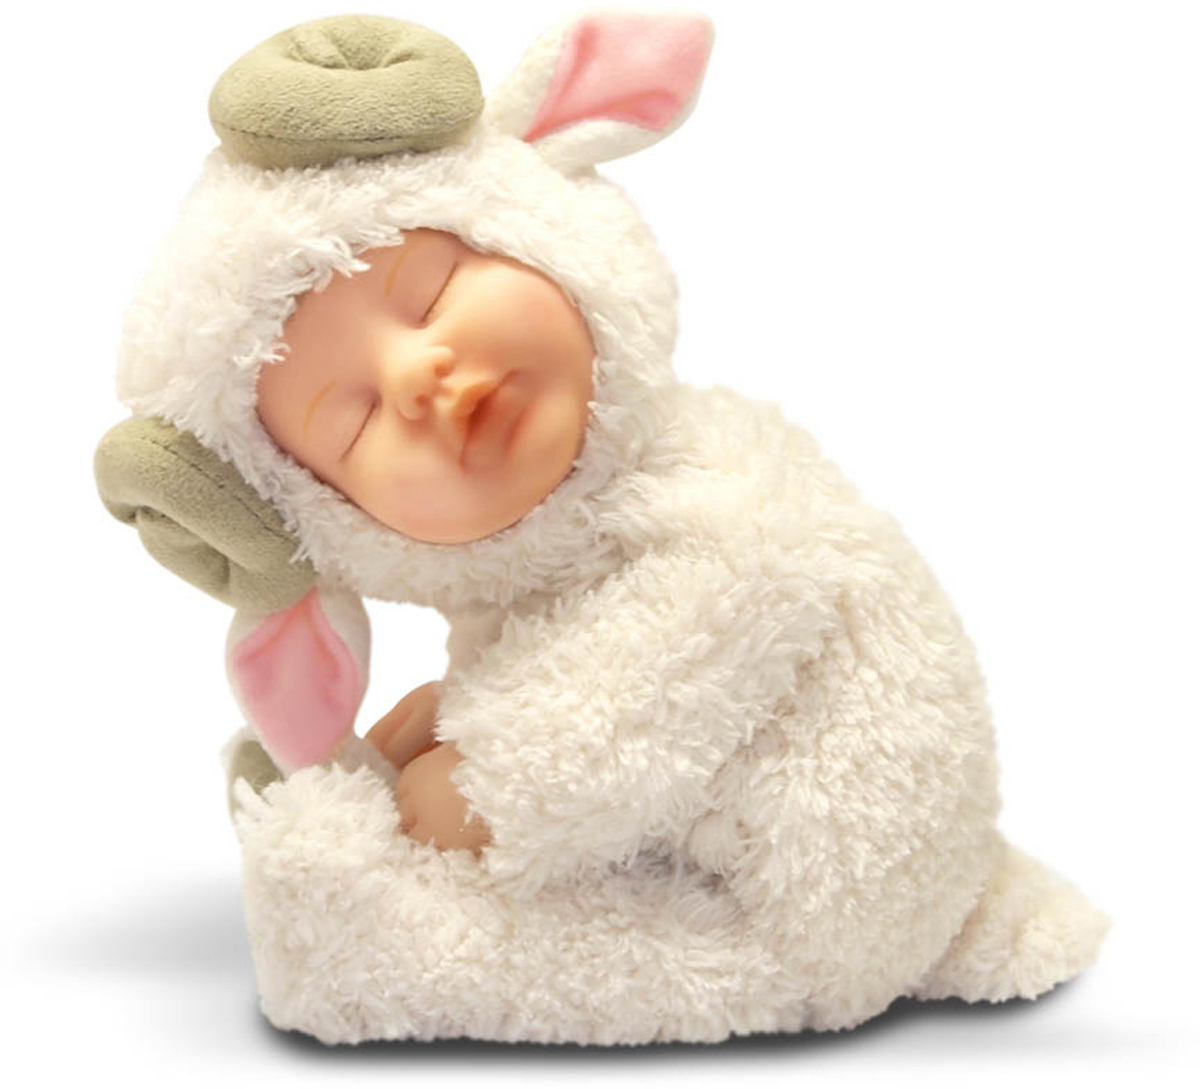 Ovation Anne Geddes Кукла Знаки зодиака Овен anne geddes 9 детки знаки зодиака близнецы unimax